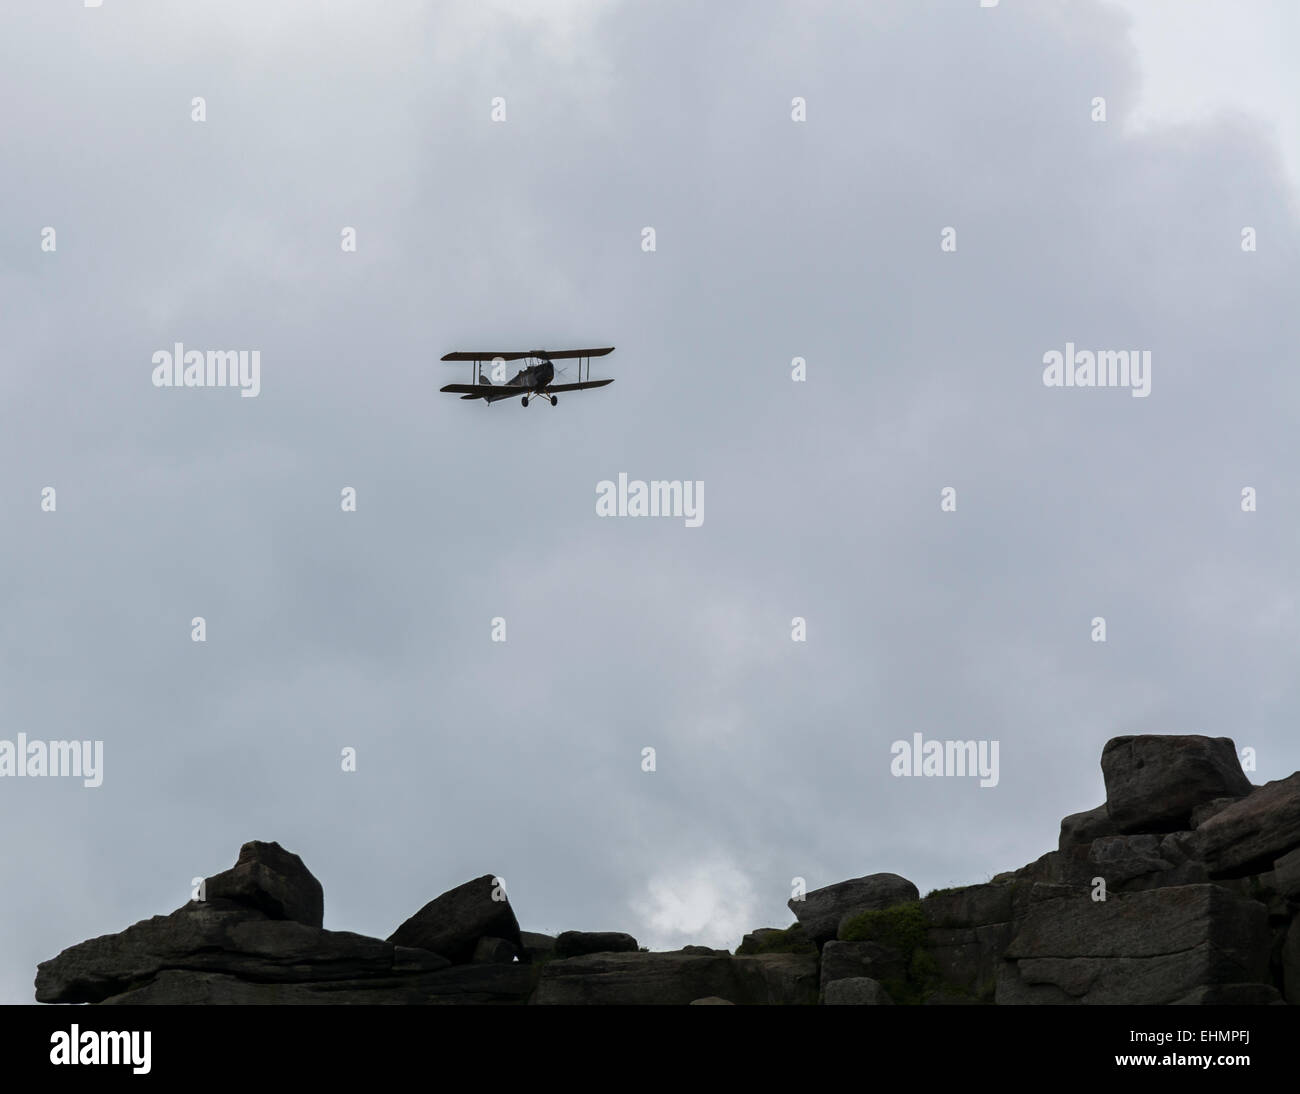 Bi plane in the sky over the Derbyshire Peak District England - Stock Image